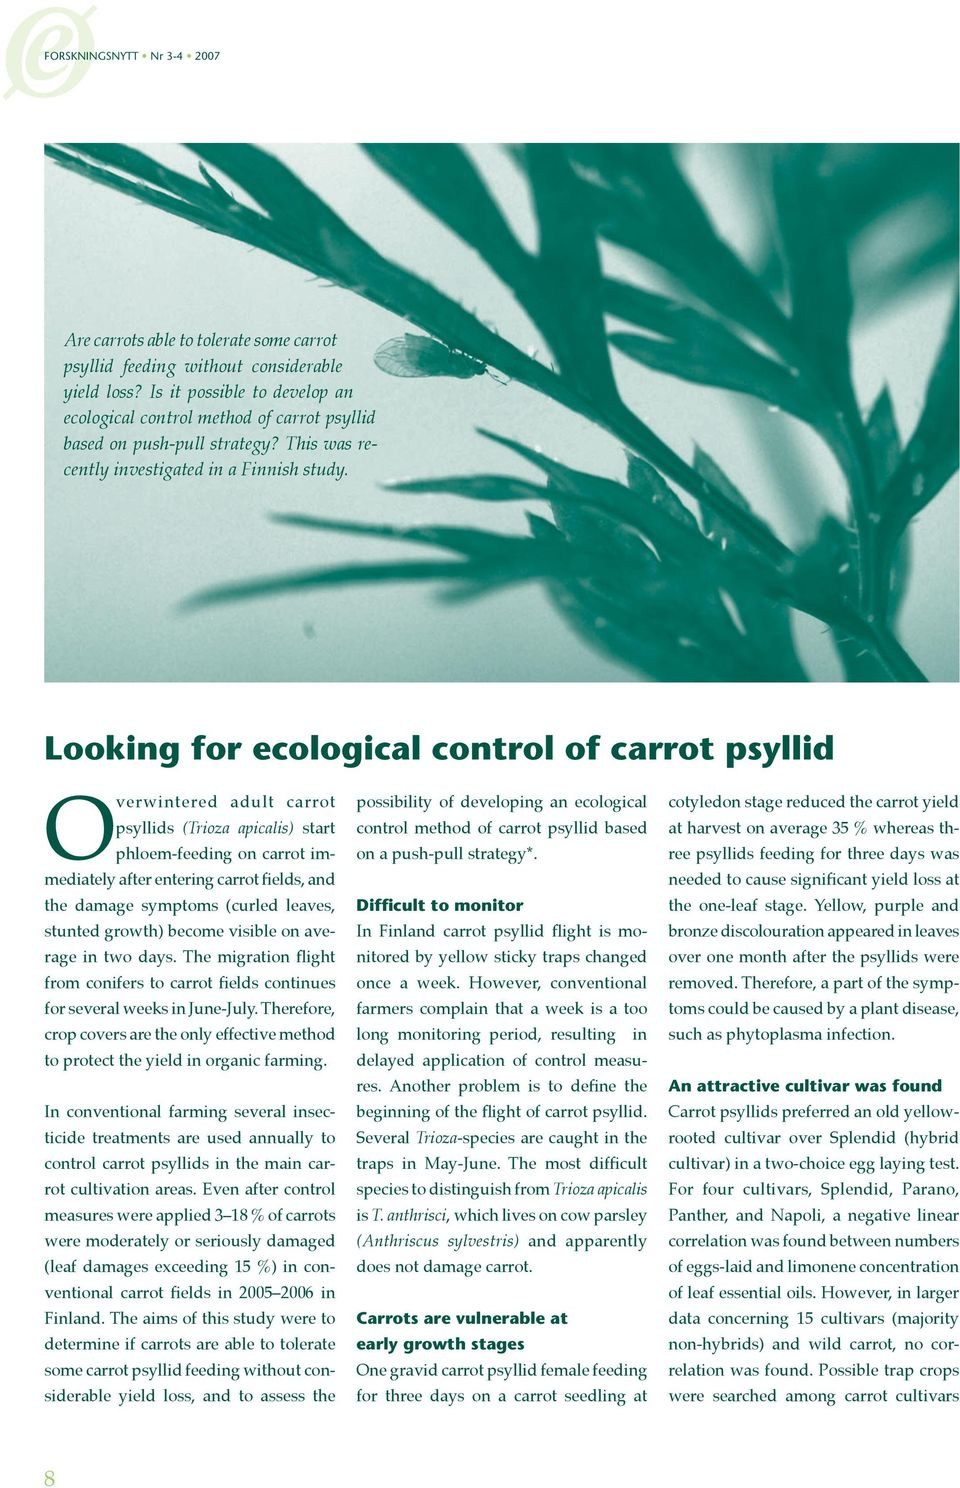 Looking for ecological control of carrot psyllid Overwintered adult carrot psyllids (Trioza apicalis) start phloem-feeding on carrot immediately after entering carrot fields, and the damage symptoms